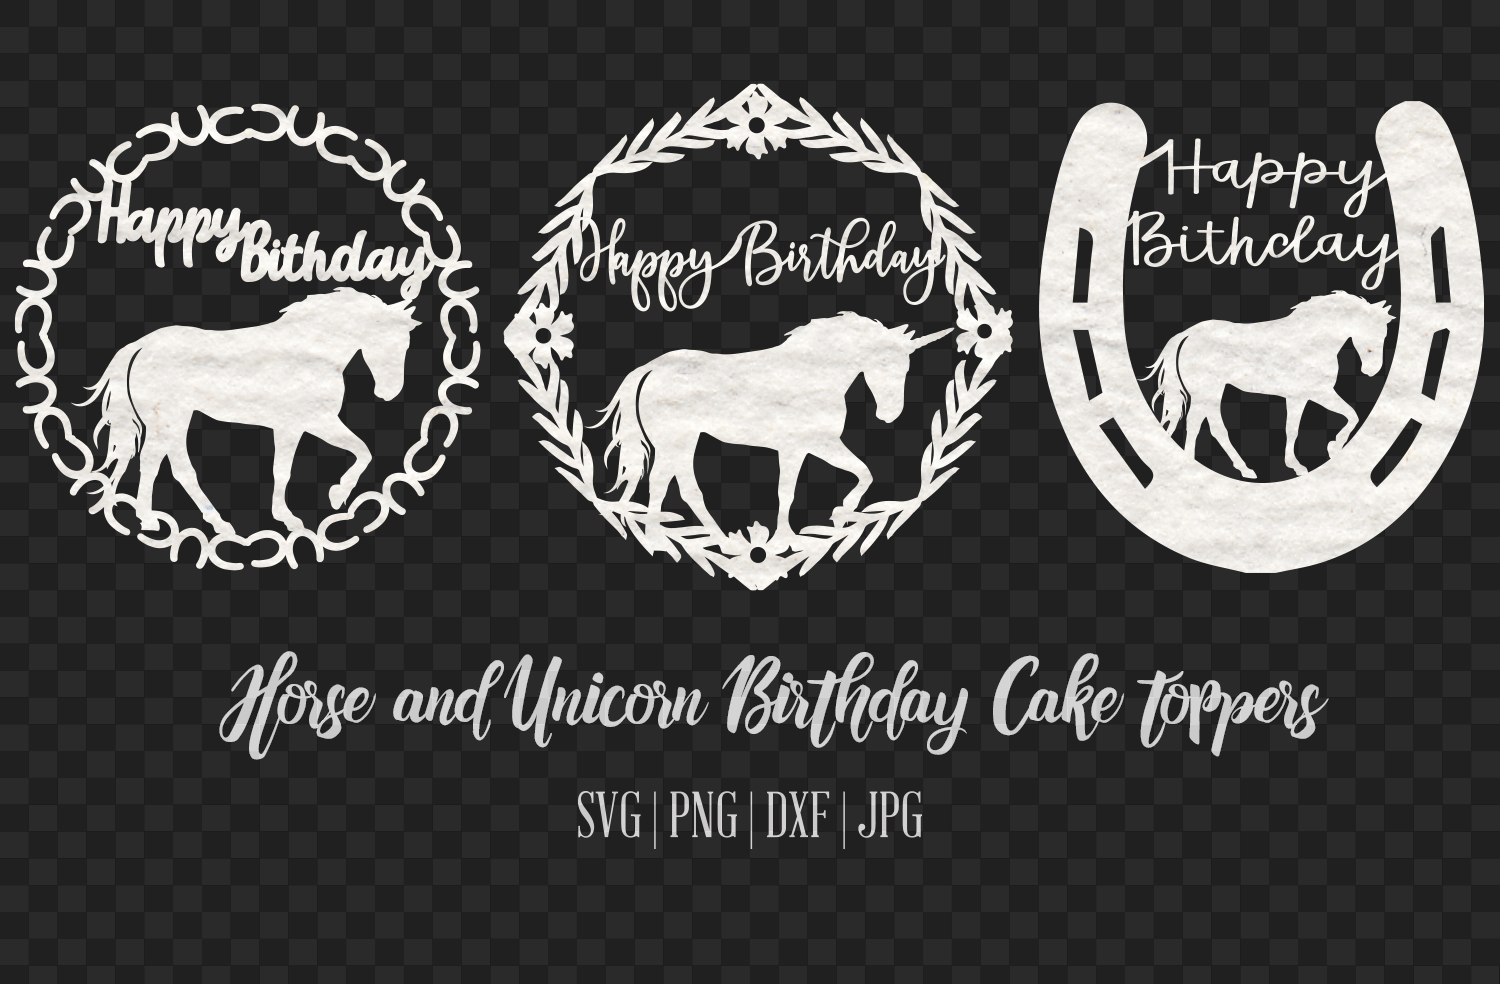 Horse and Unicorn Birthday Cake Topper SVG File